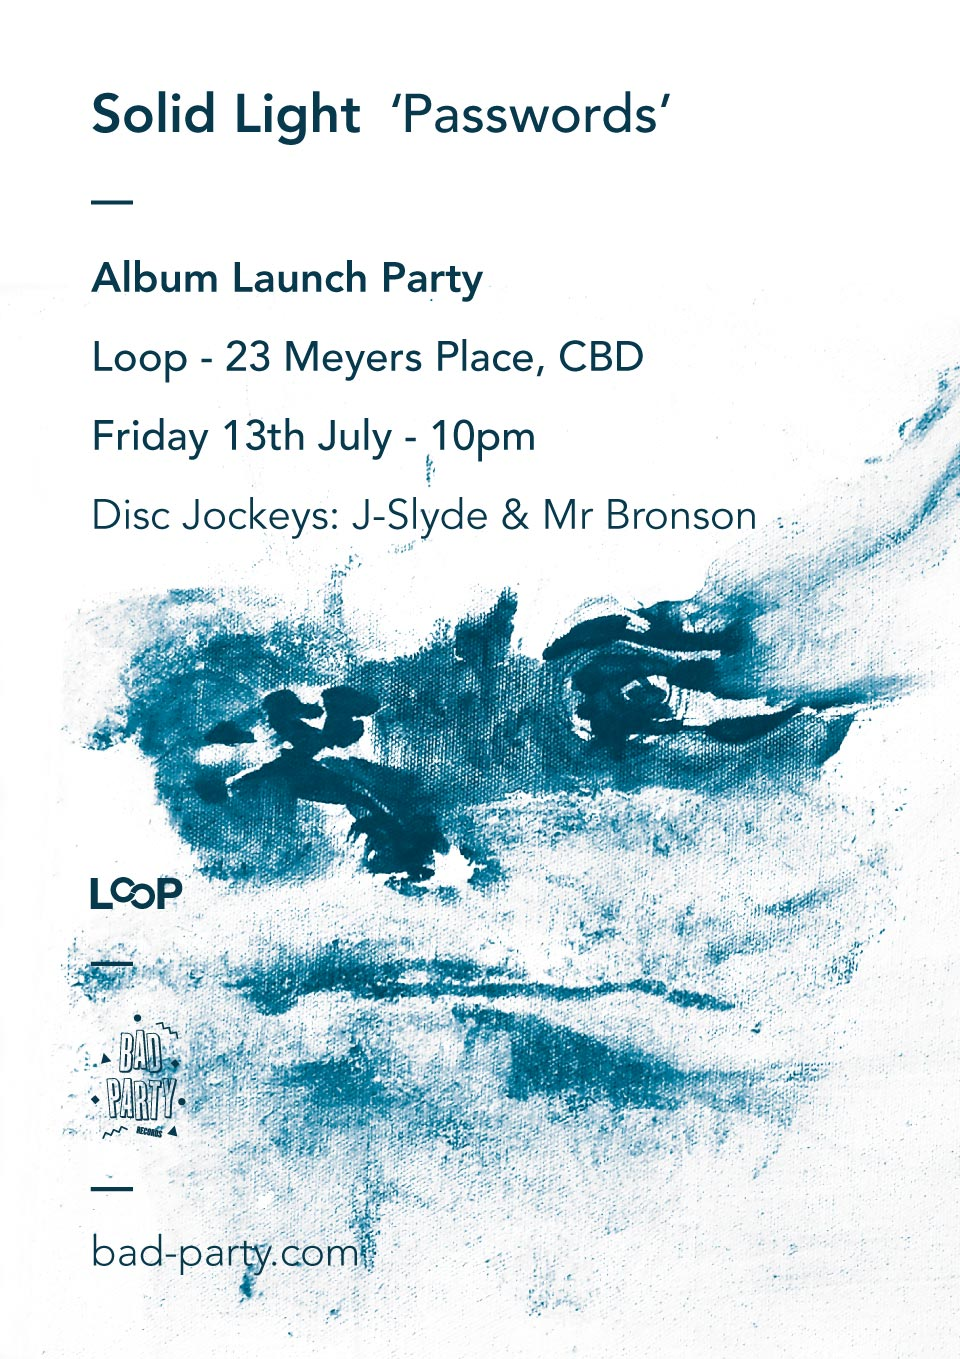 Solid Light 'Passwords' Album Launch